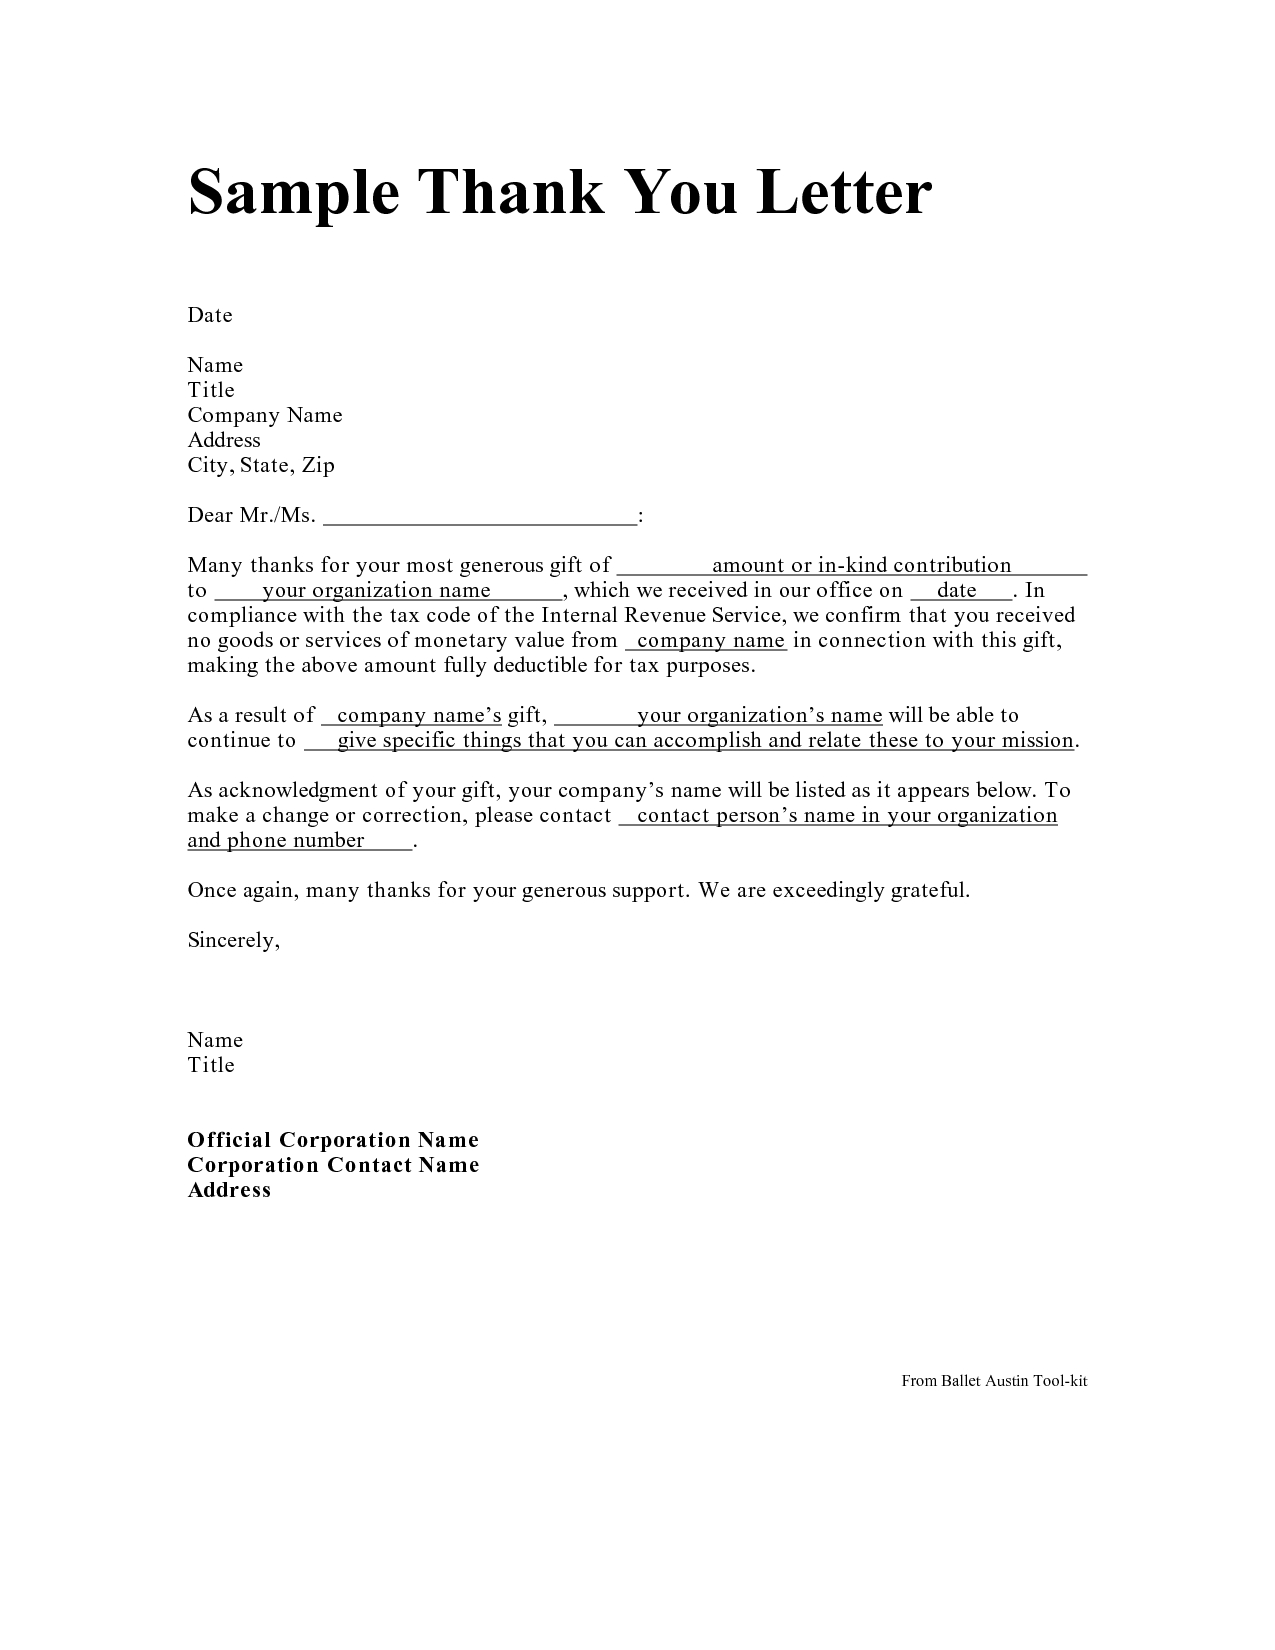 For Sale by Owner Letter Template - Personal Thank You Letter Personal Thank You Letter Samples